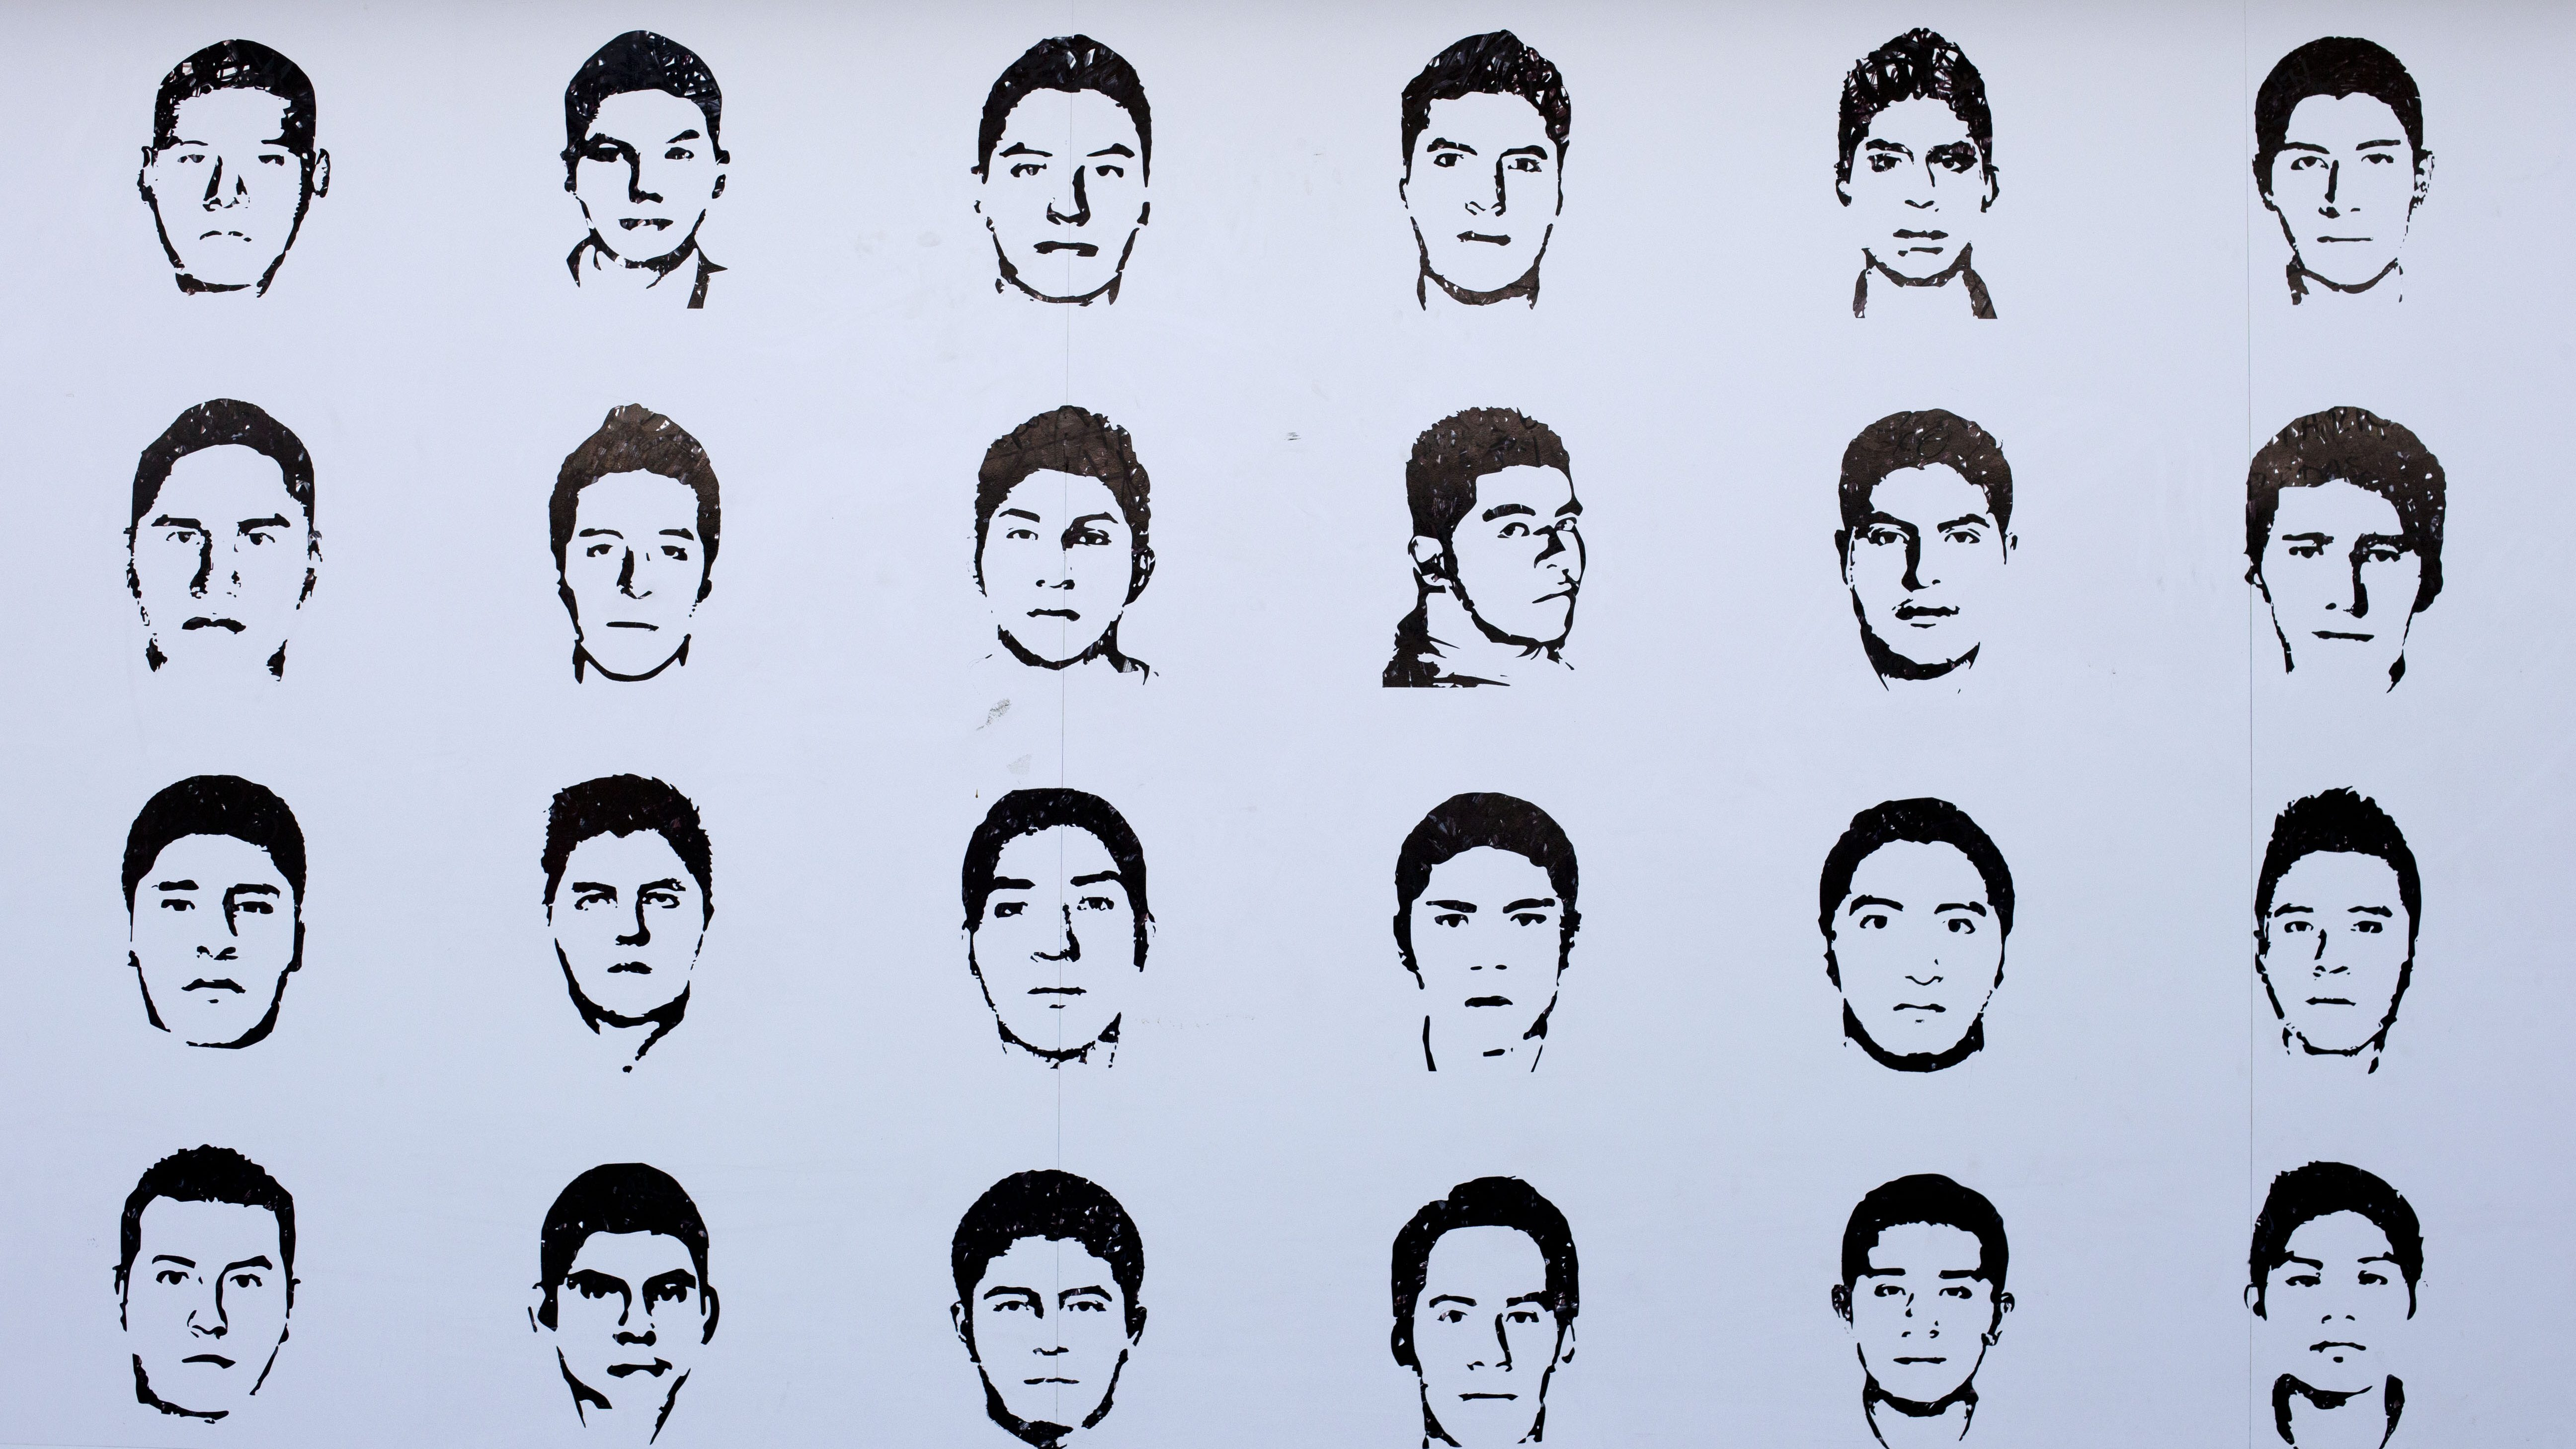 Portraits of some of the 43 teacher's college students from Ayotzinapa, Mexico, that disappeared on Sept. 26, 2014.